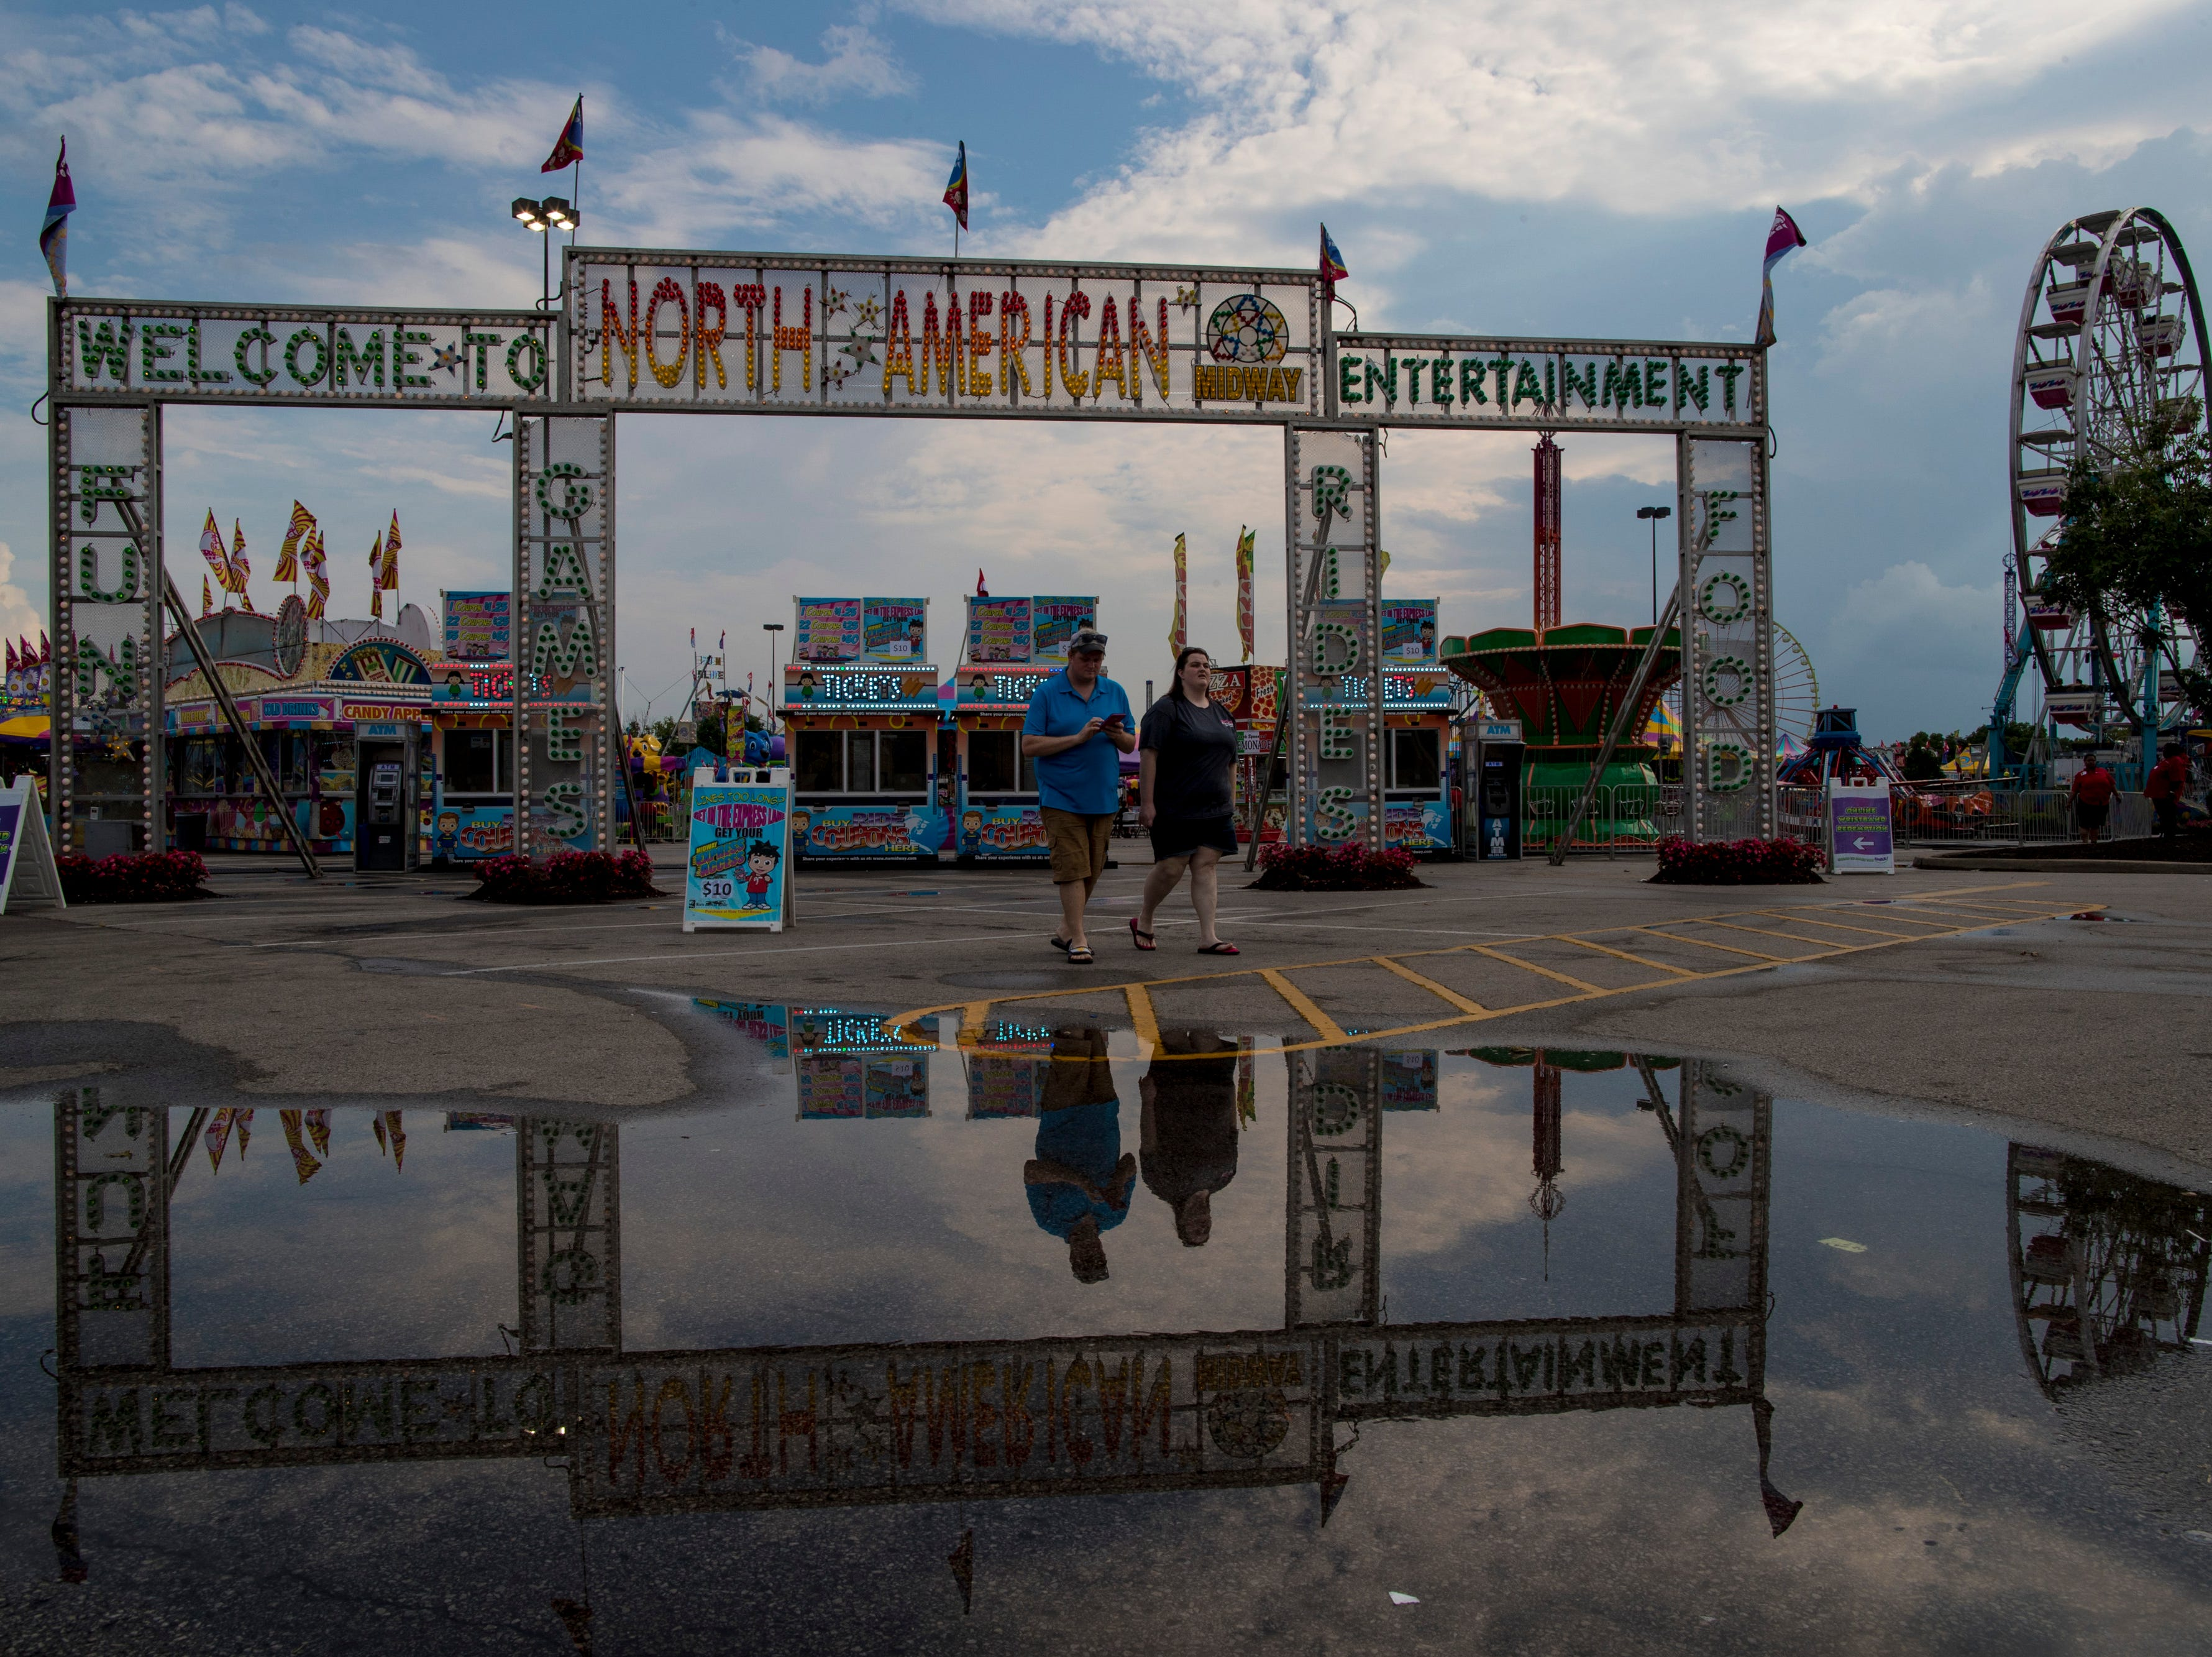 Rain showers led to a slow Monday at the Kentucky State Fair. Aug. 20, 2018